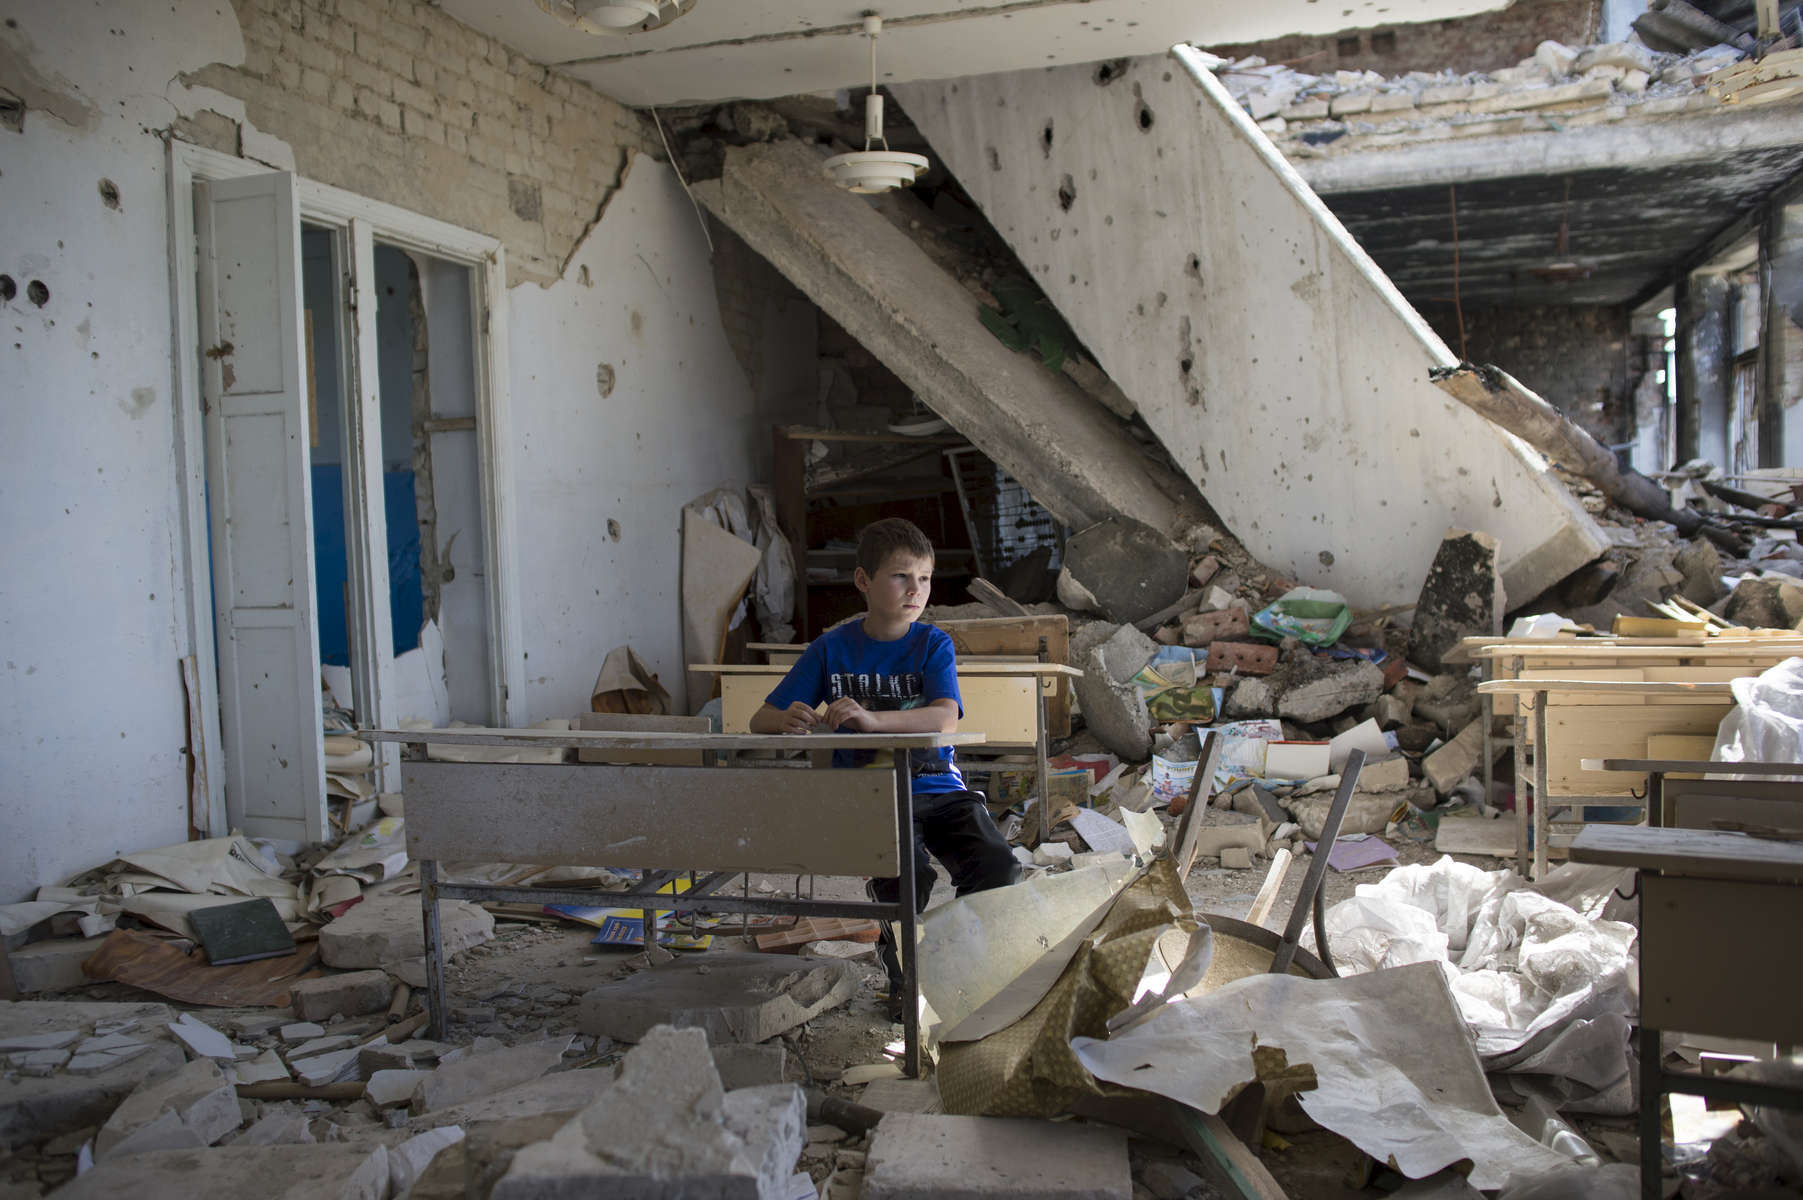 Oleg Teryokhin sits at a desk in one of the classrooms in his former school in Nikishino village, which was destroyed by the east Ukraine war, September 27, 2015, in DNR territory.  Nikishino village was far from the sites of early skirmishing and neither side bothered trying to control this small village until it turned out it was on the path of a major Ukrainian offensive begun in July with the goal of encircling Donetsk city, the provincial capital. Using long-range artillery and spotter aircraft to target it, the Ukrainian army was pushing separatists back from one town after another. Galina Teryokhina, Oleg's mother, said residents didn't take the war seriously until mid July, 2014. Oleg was playing outside in the afternoon when loud explosions were heard in the sky. Later, some papers with English writing and bits of charred clothes fluttered through the village, and Oleg picked some up. Nikishino village was at the edge of the debris field of the Malaysia Airlines Flight 17, likely shot down by rebels who mistook it for a Ukrainian spotter aircraft.